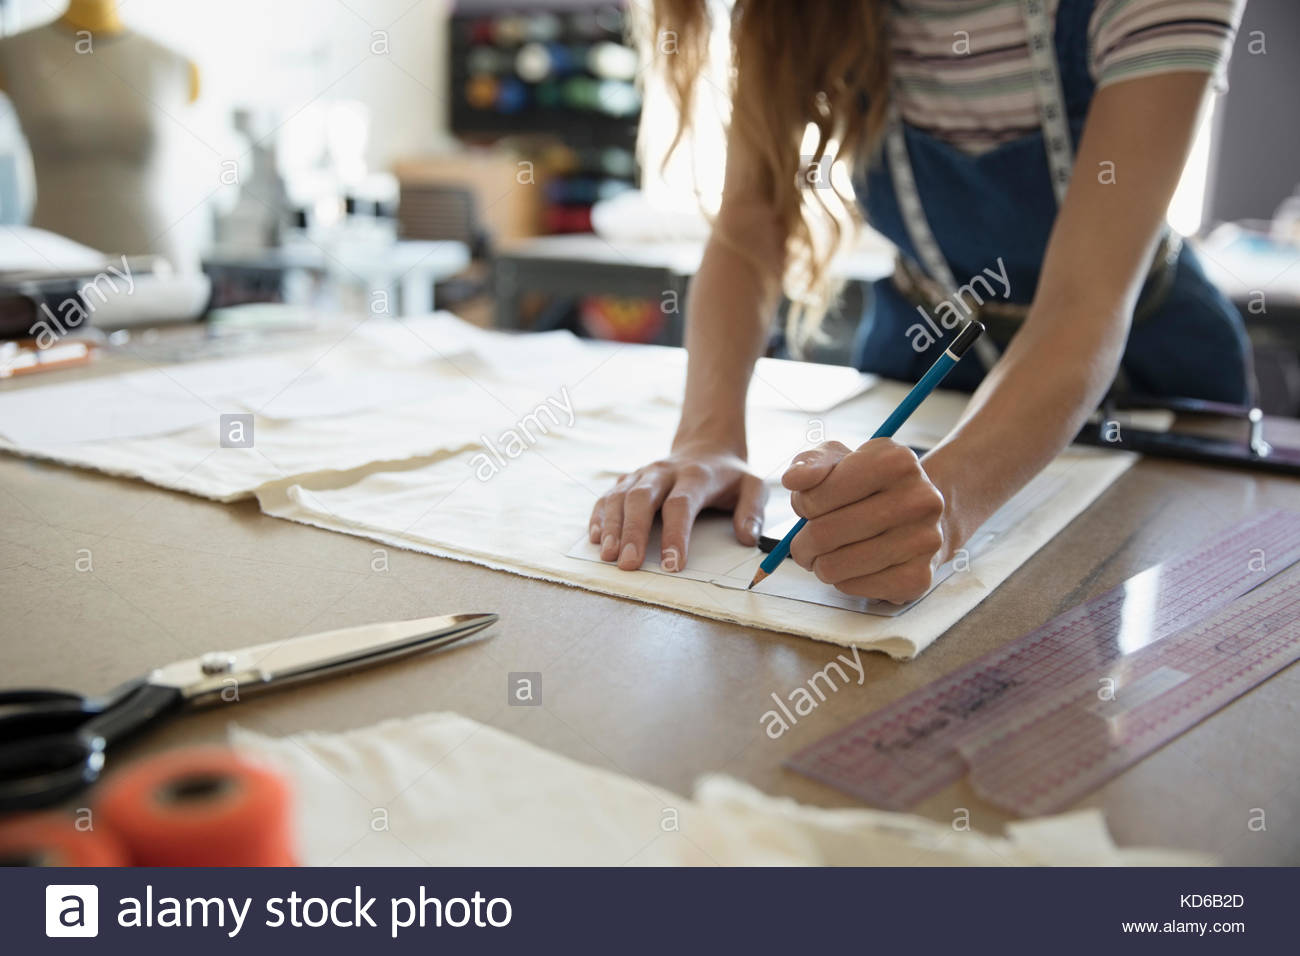 Female fashion designer tracing sewing pattern at workbench - Stock Image